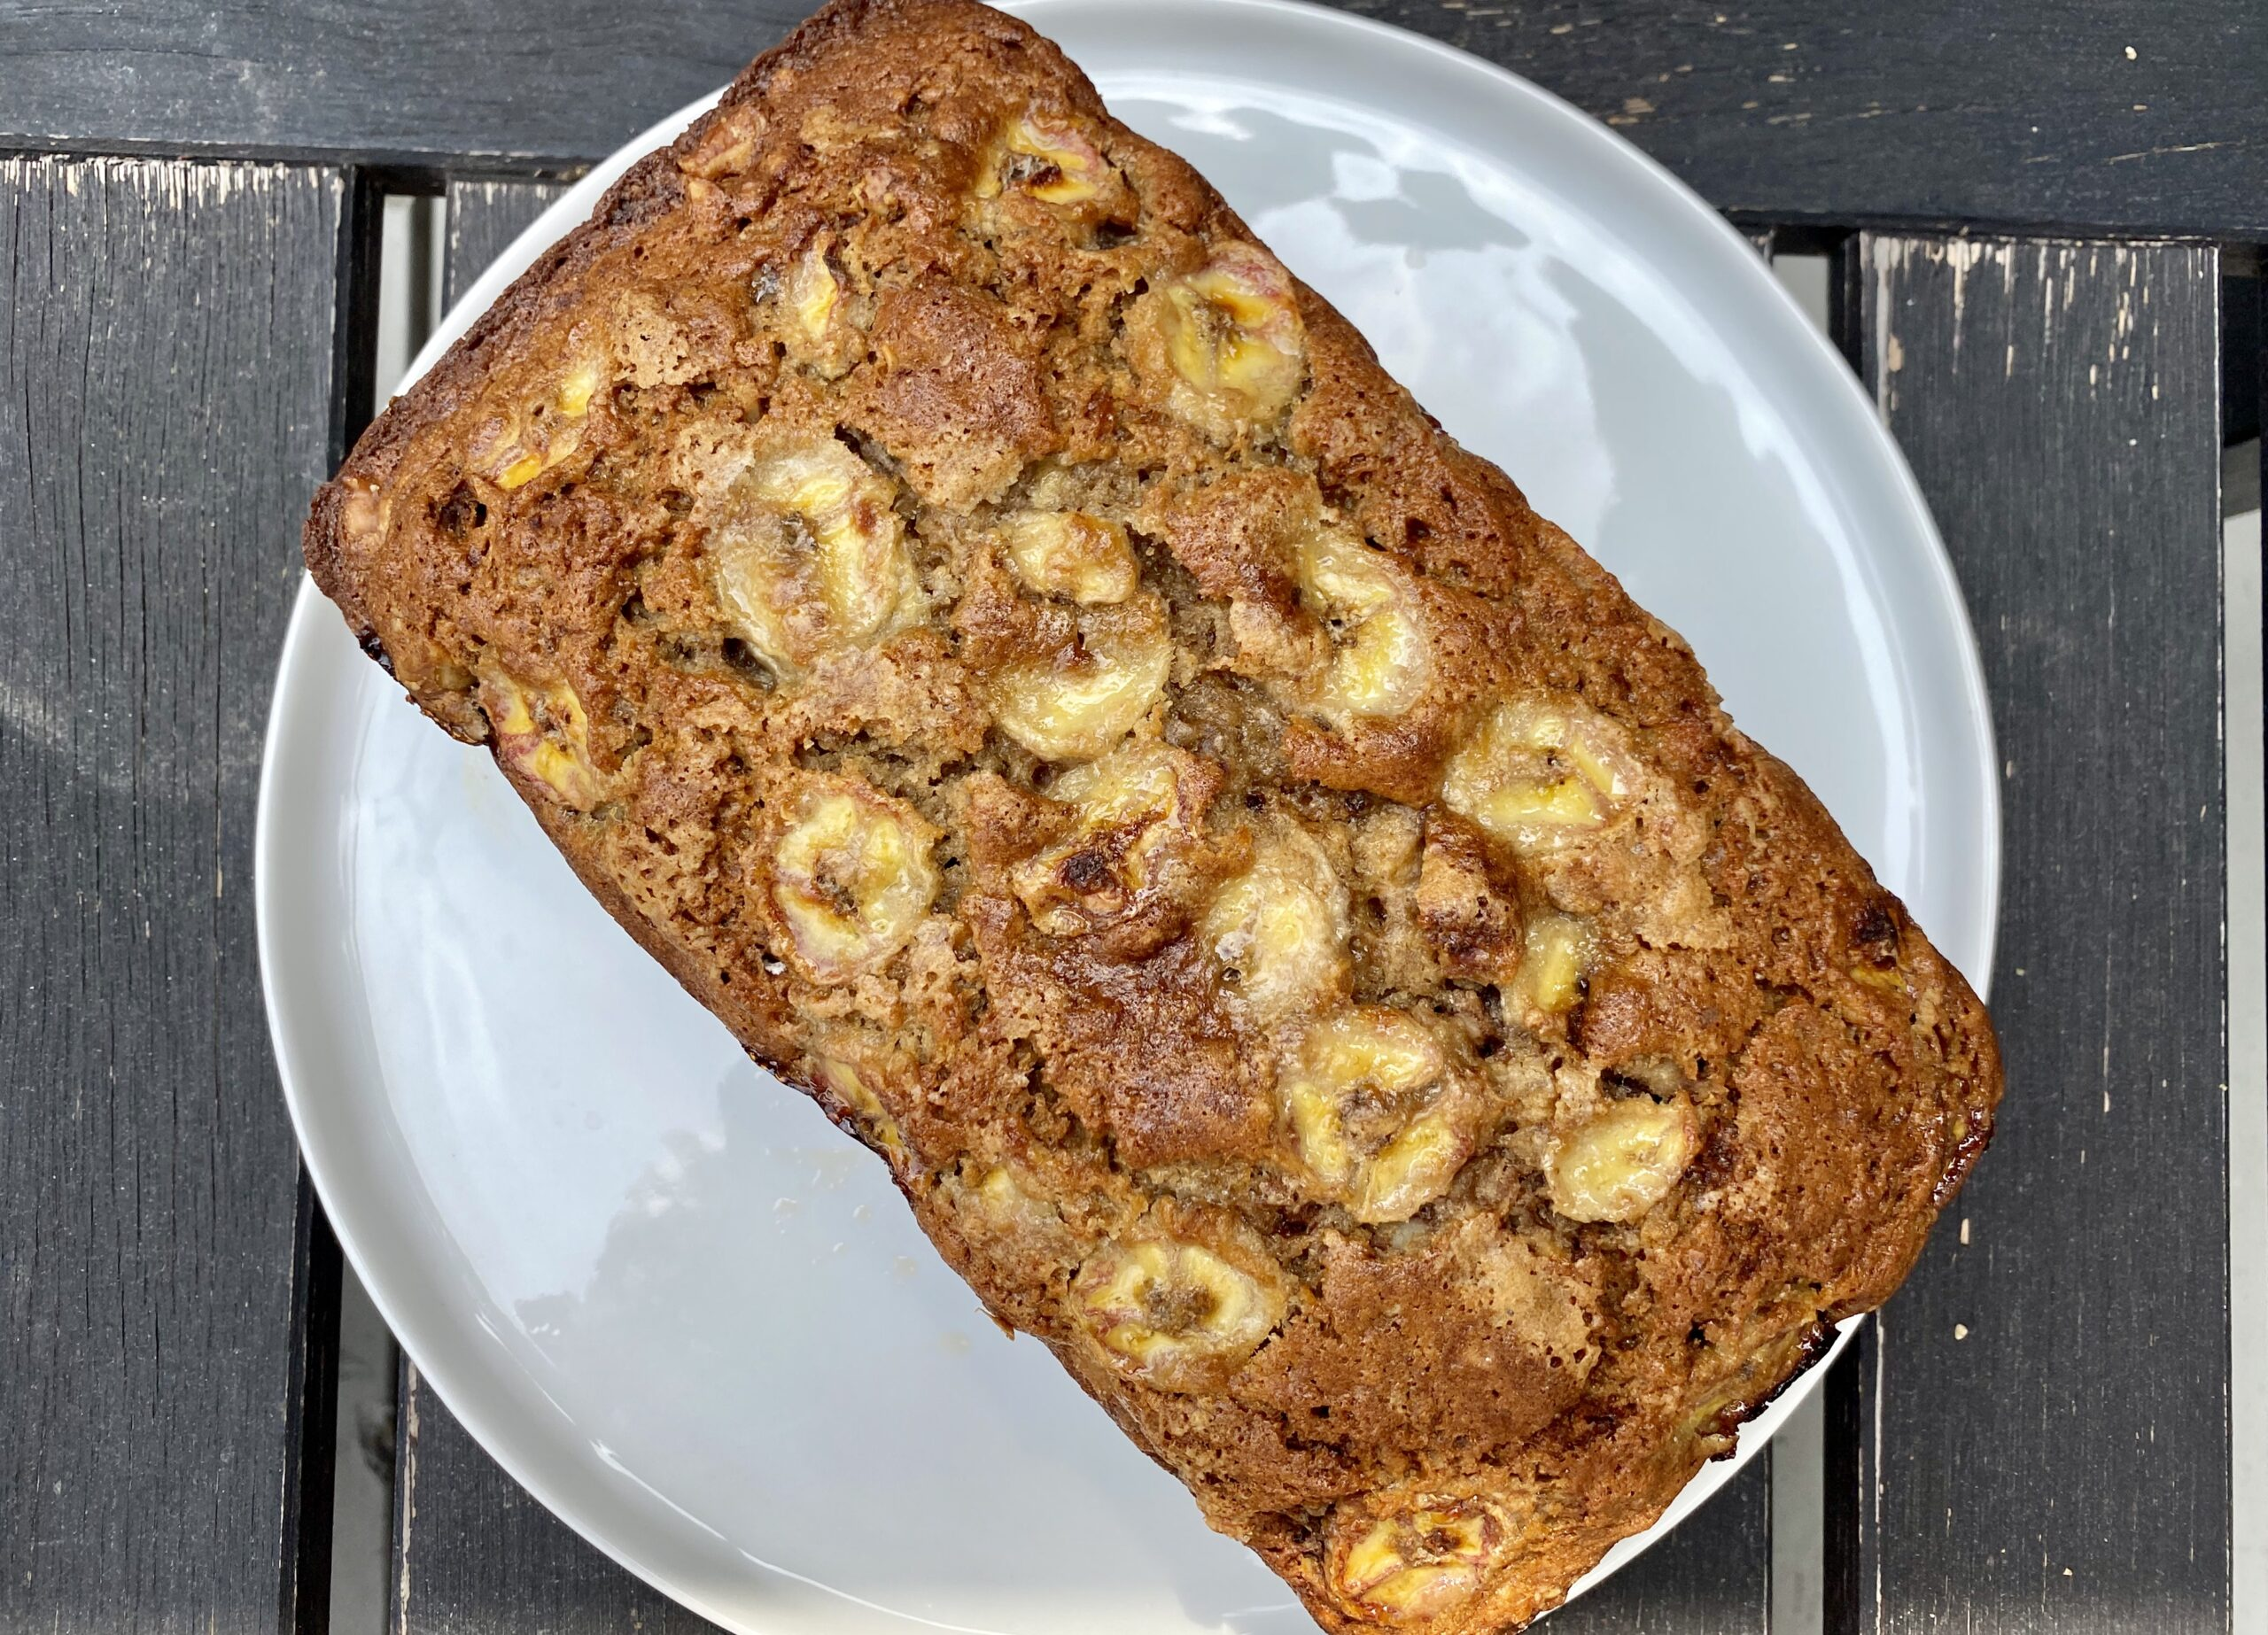 The BEST Sourdough (Discard) Banana Bread